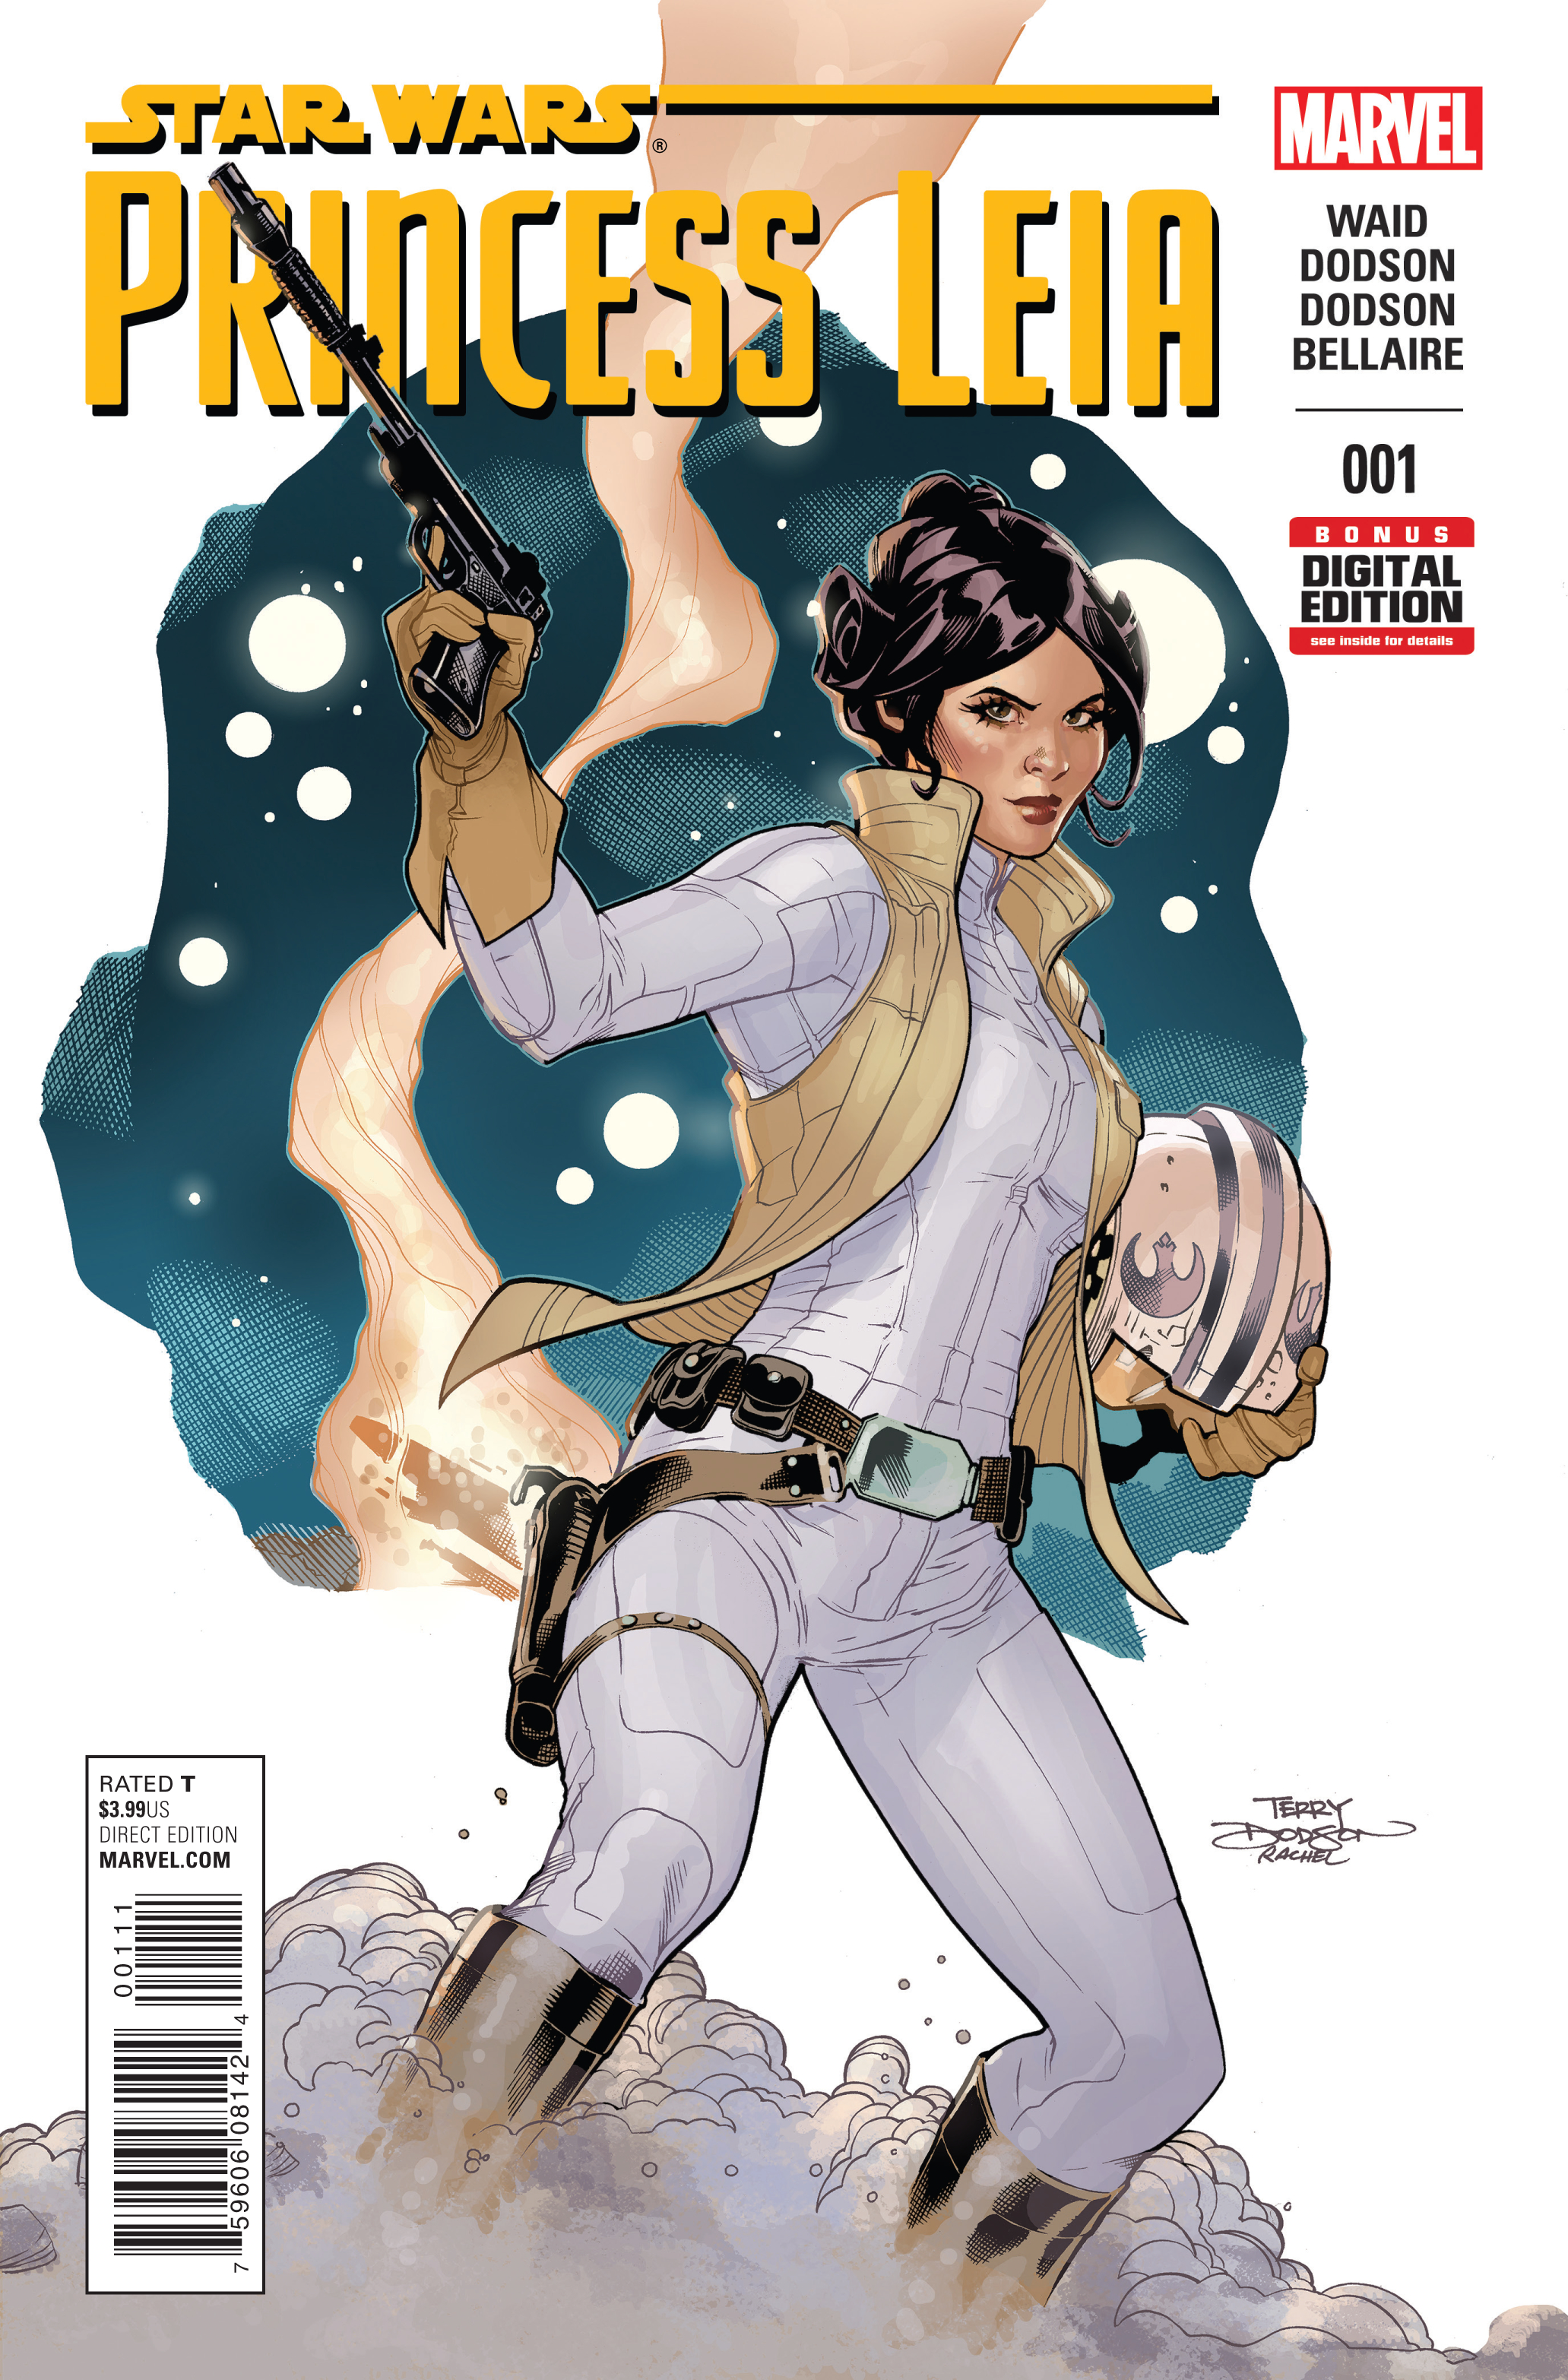 PRINCESS LEIA #1 (OF 5)